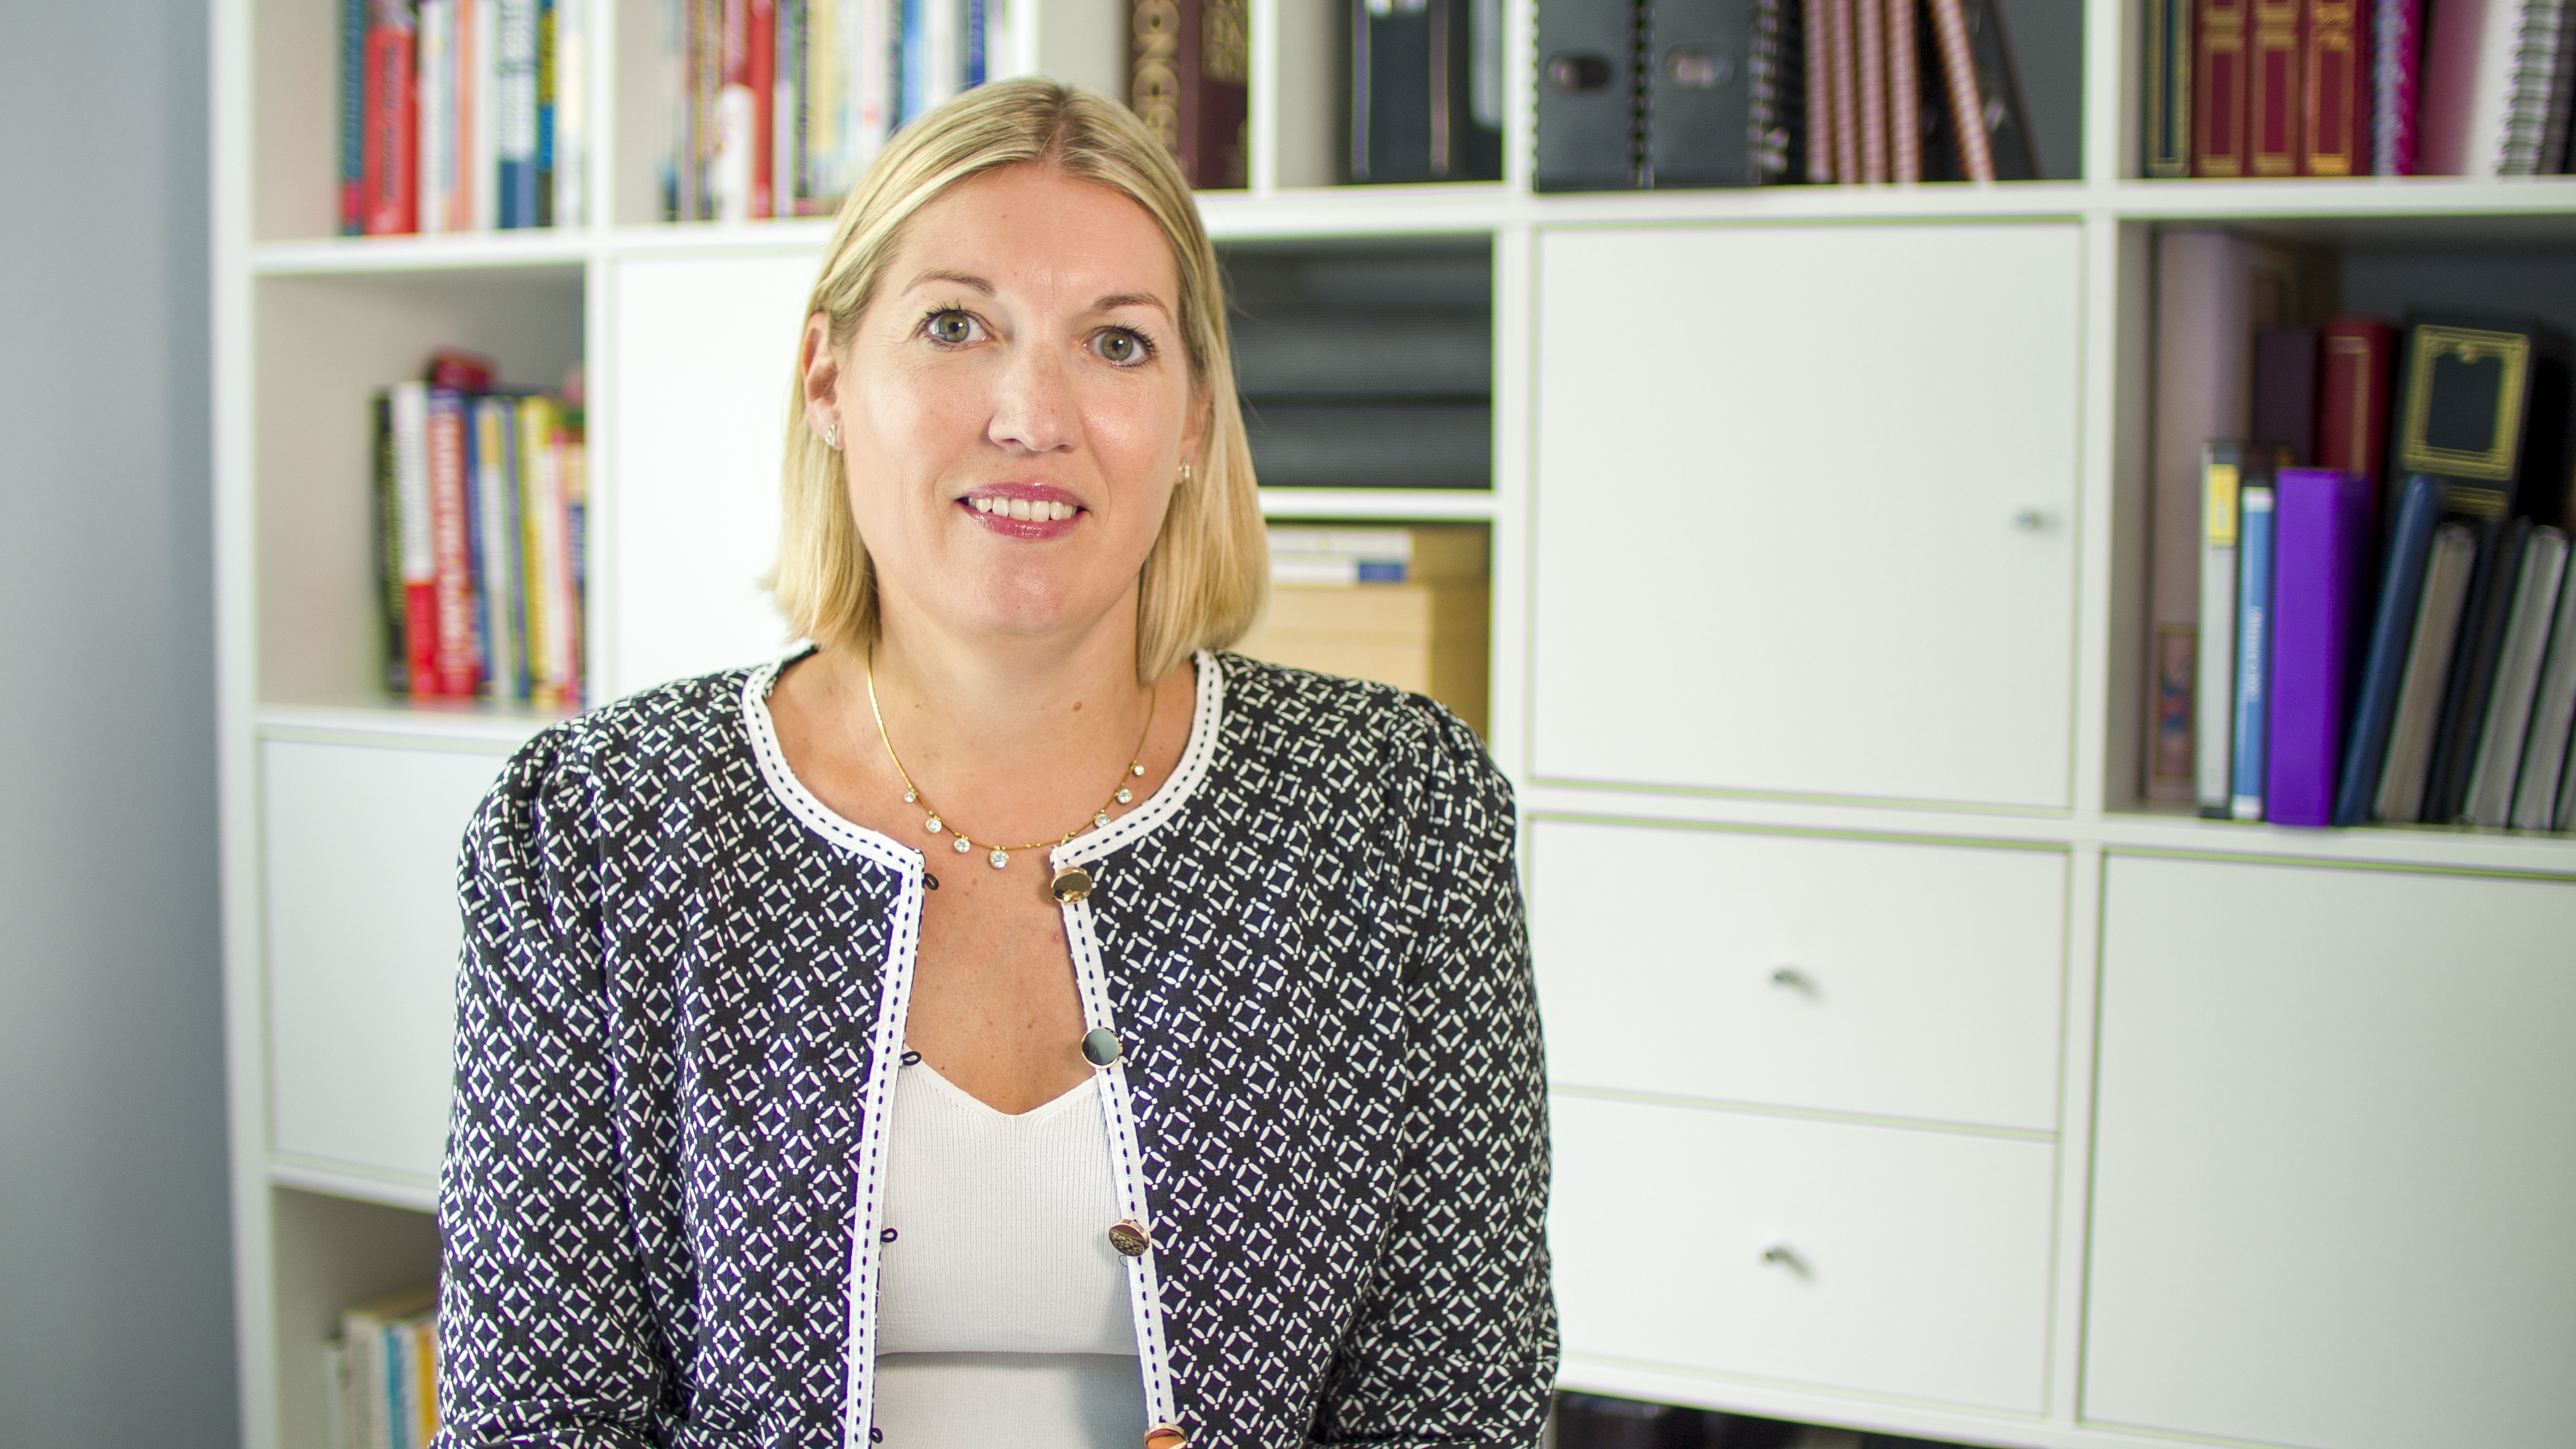 Renowned Pembrokeshire solicitor Gemma Scourfield joins top family law firm Woolley & Co